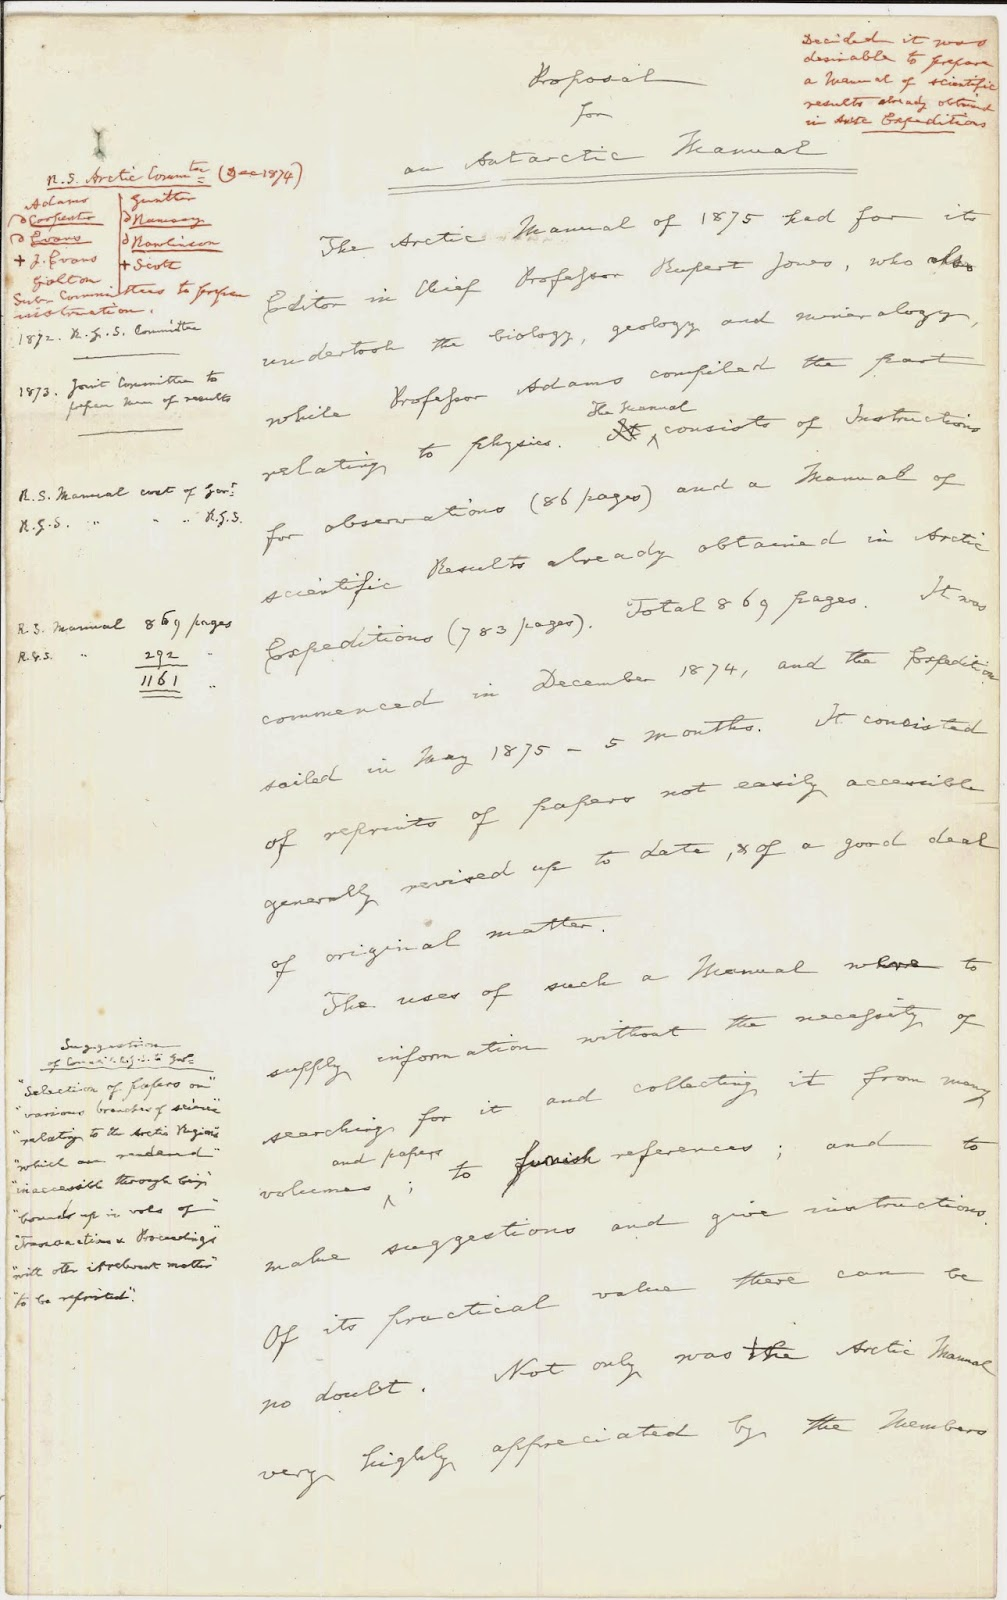 A page of handwritten text.